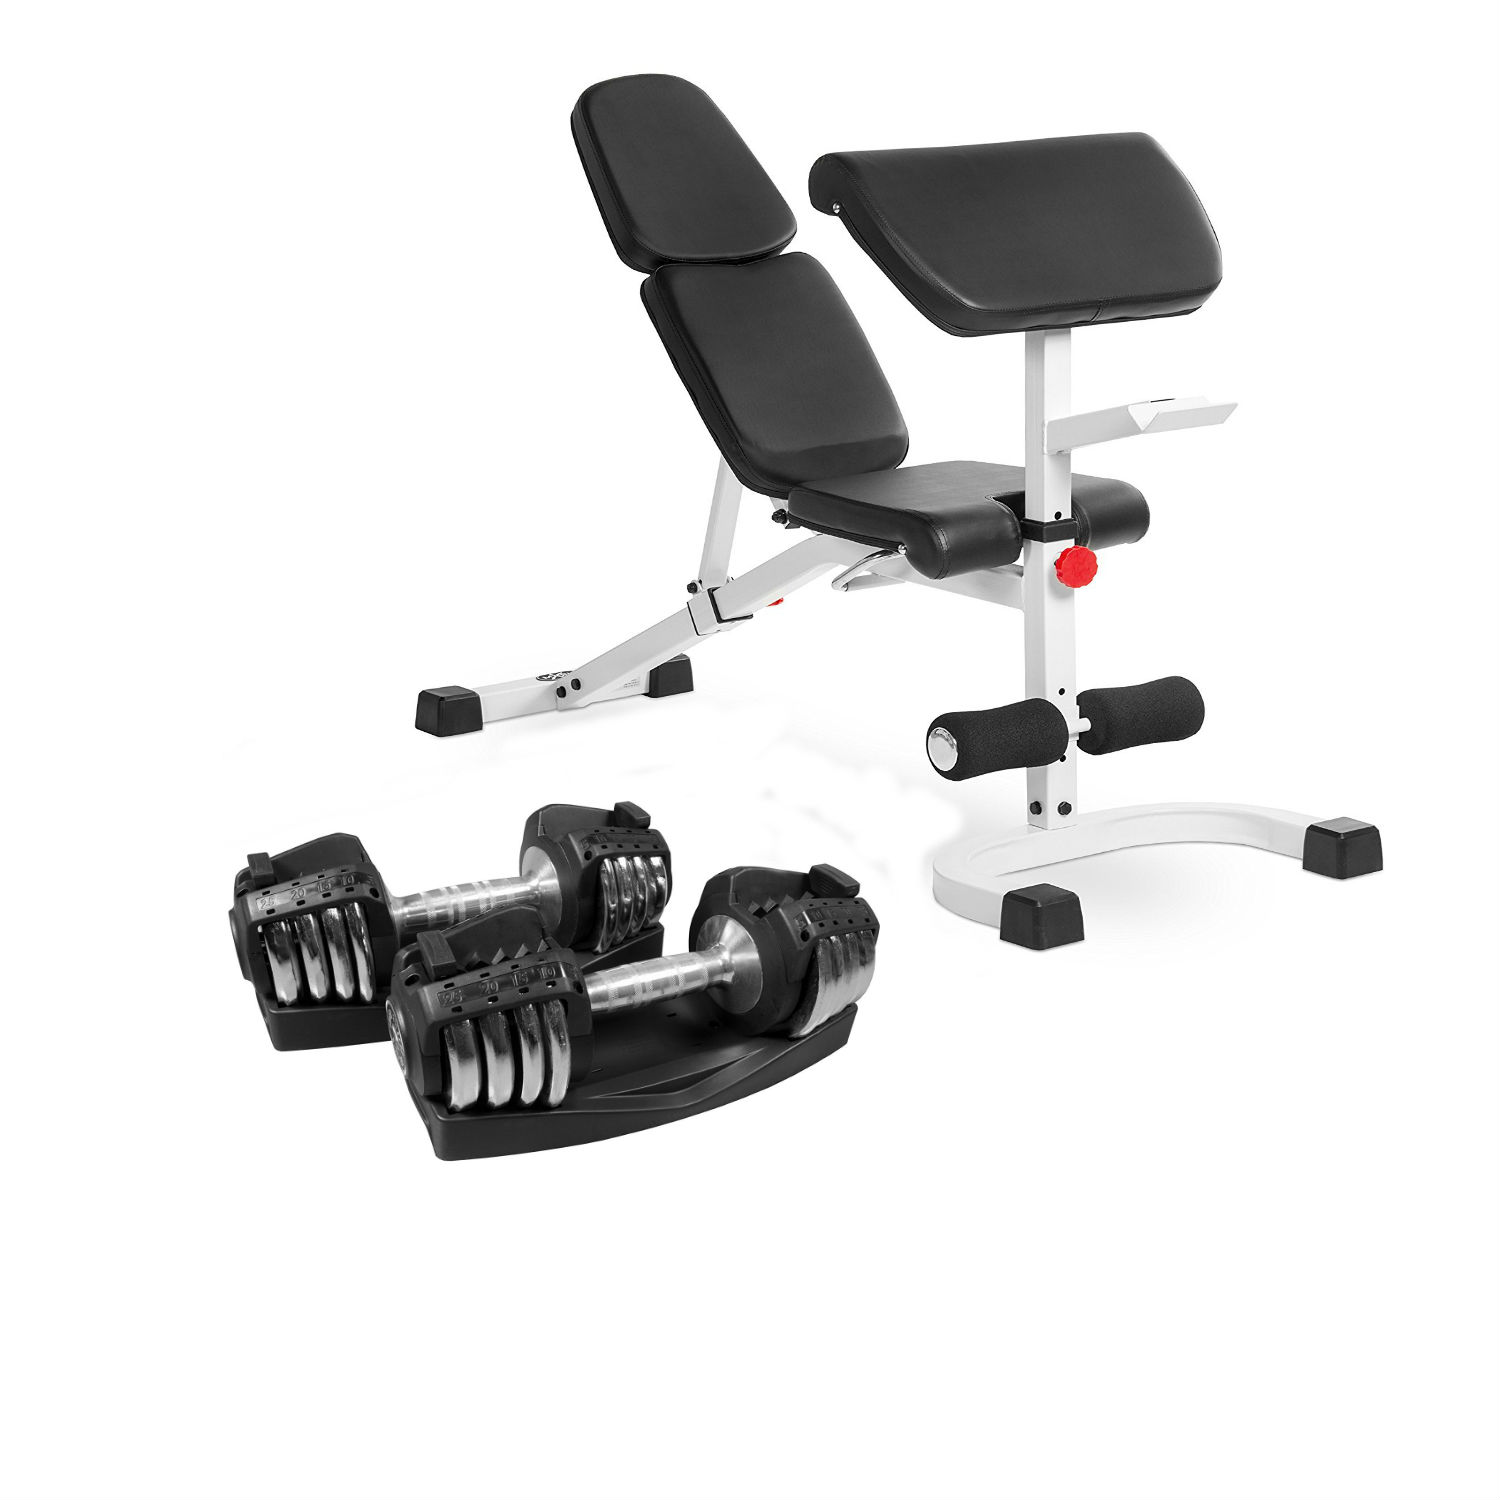 Combo Offer XMark Fitness Flat Incline Decline Weight Bench with Preacher Curl XM-4417-WHITE and Pair of 25 lb. Adjustable Dumbbells XM-3305